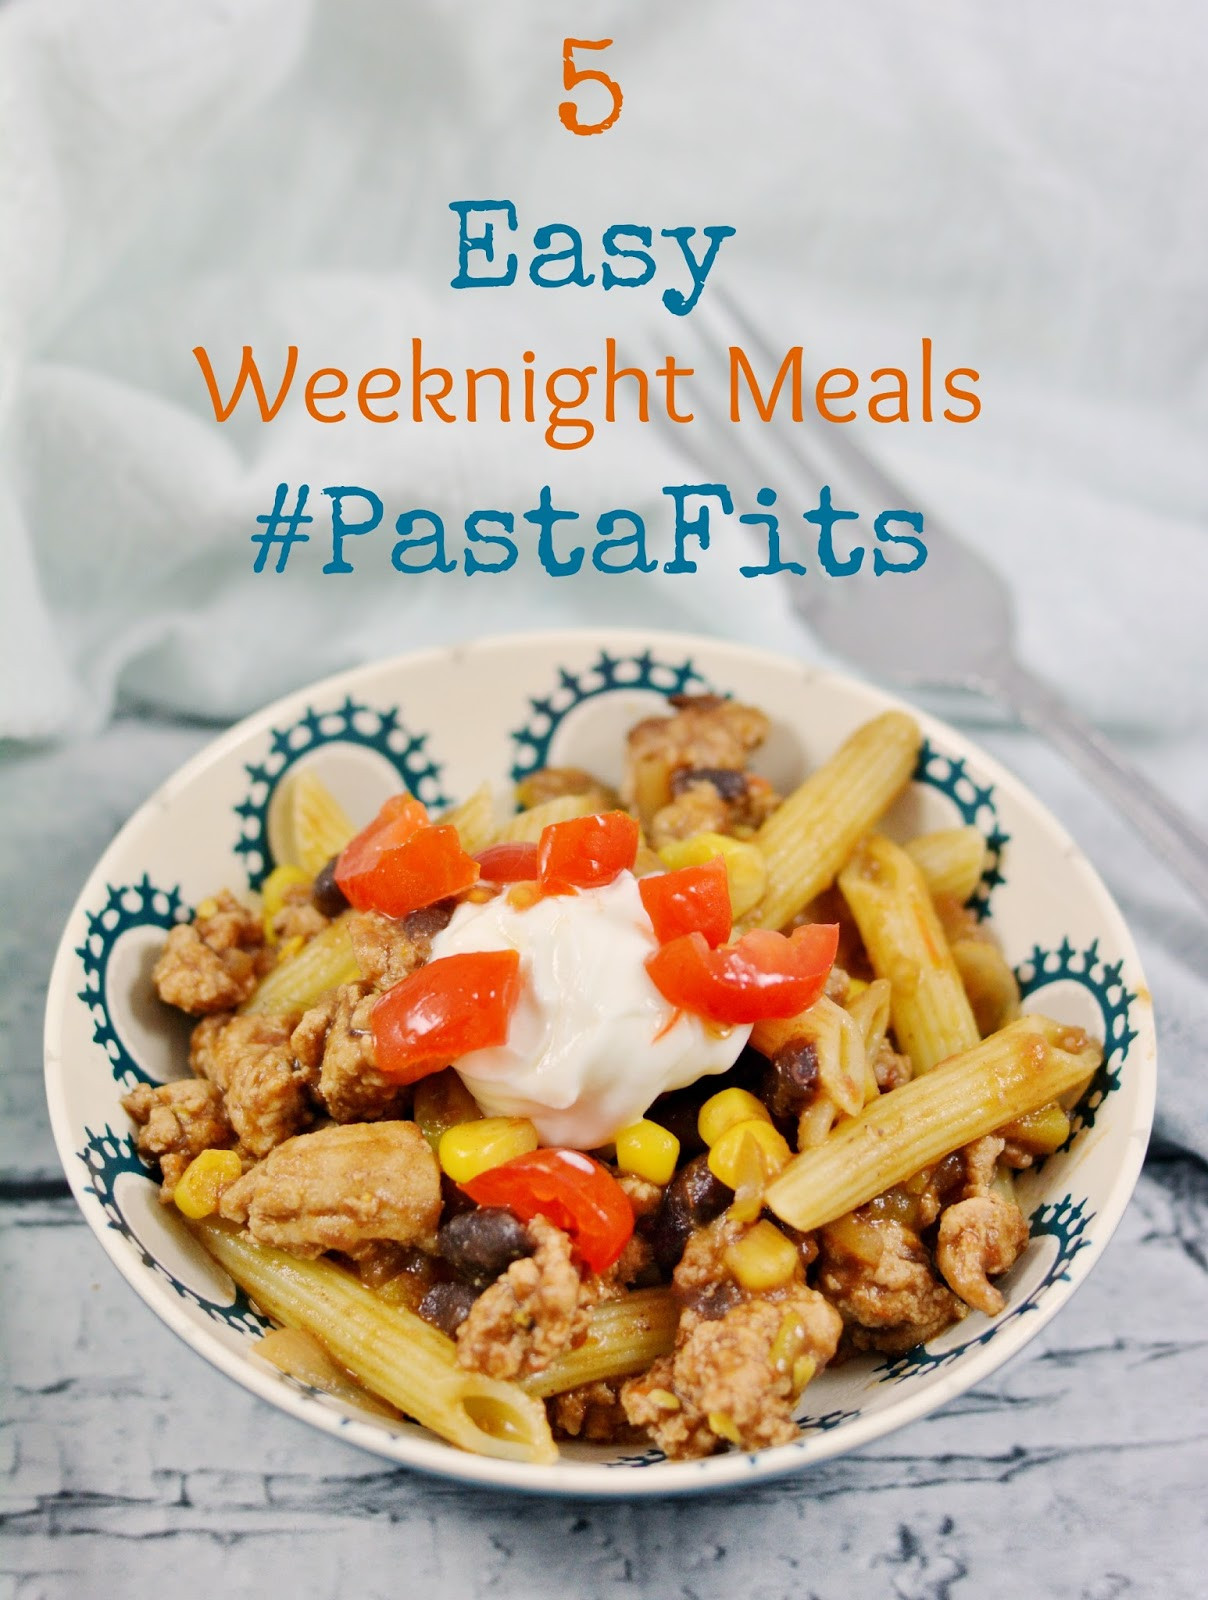 Simple Weeknight Dinners  Life With 4 Boys 5 Easy Weeknight Meals PastaFits MC